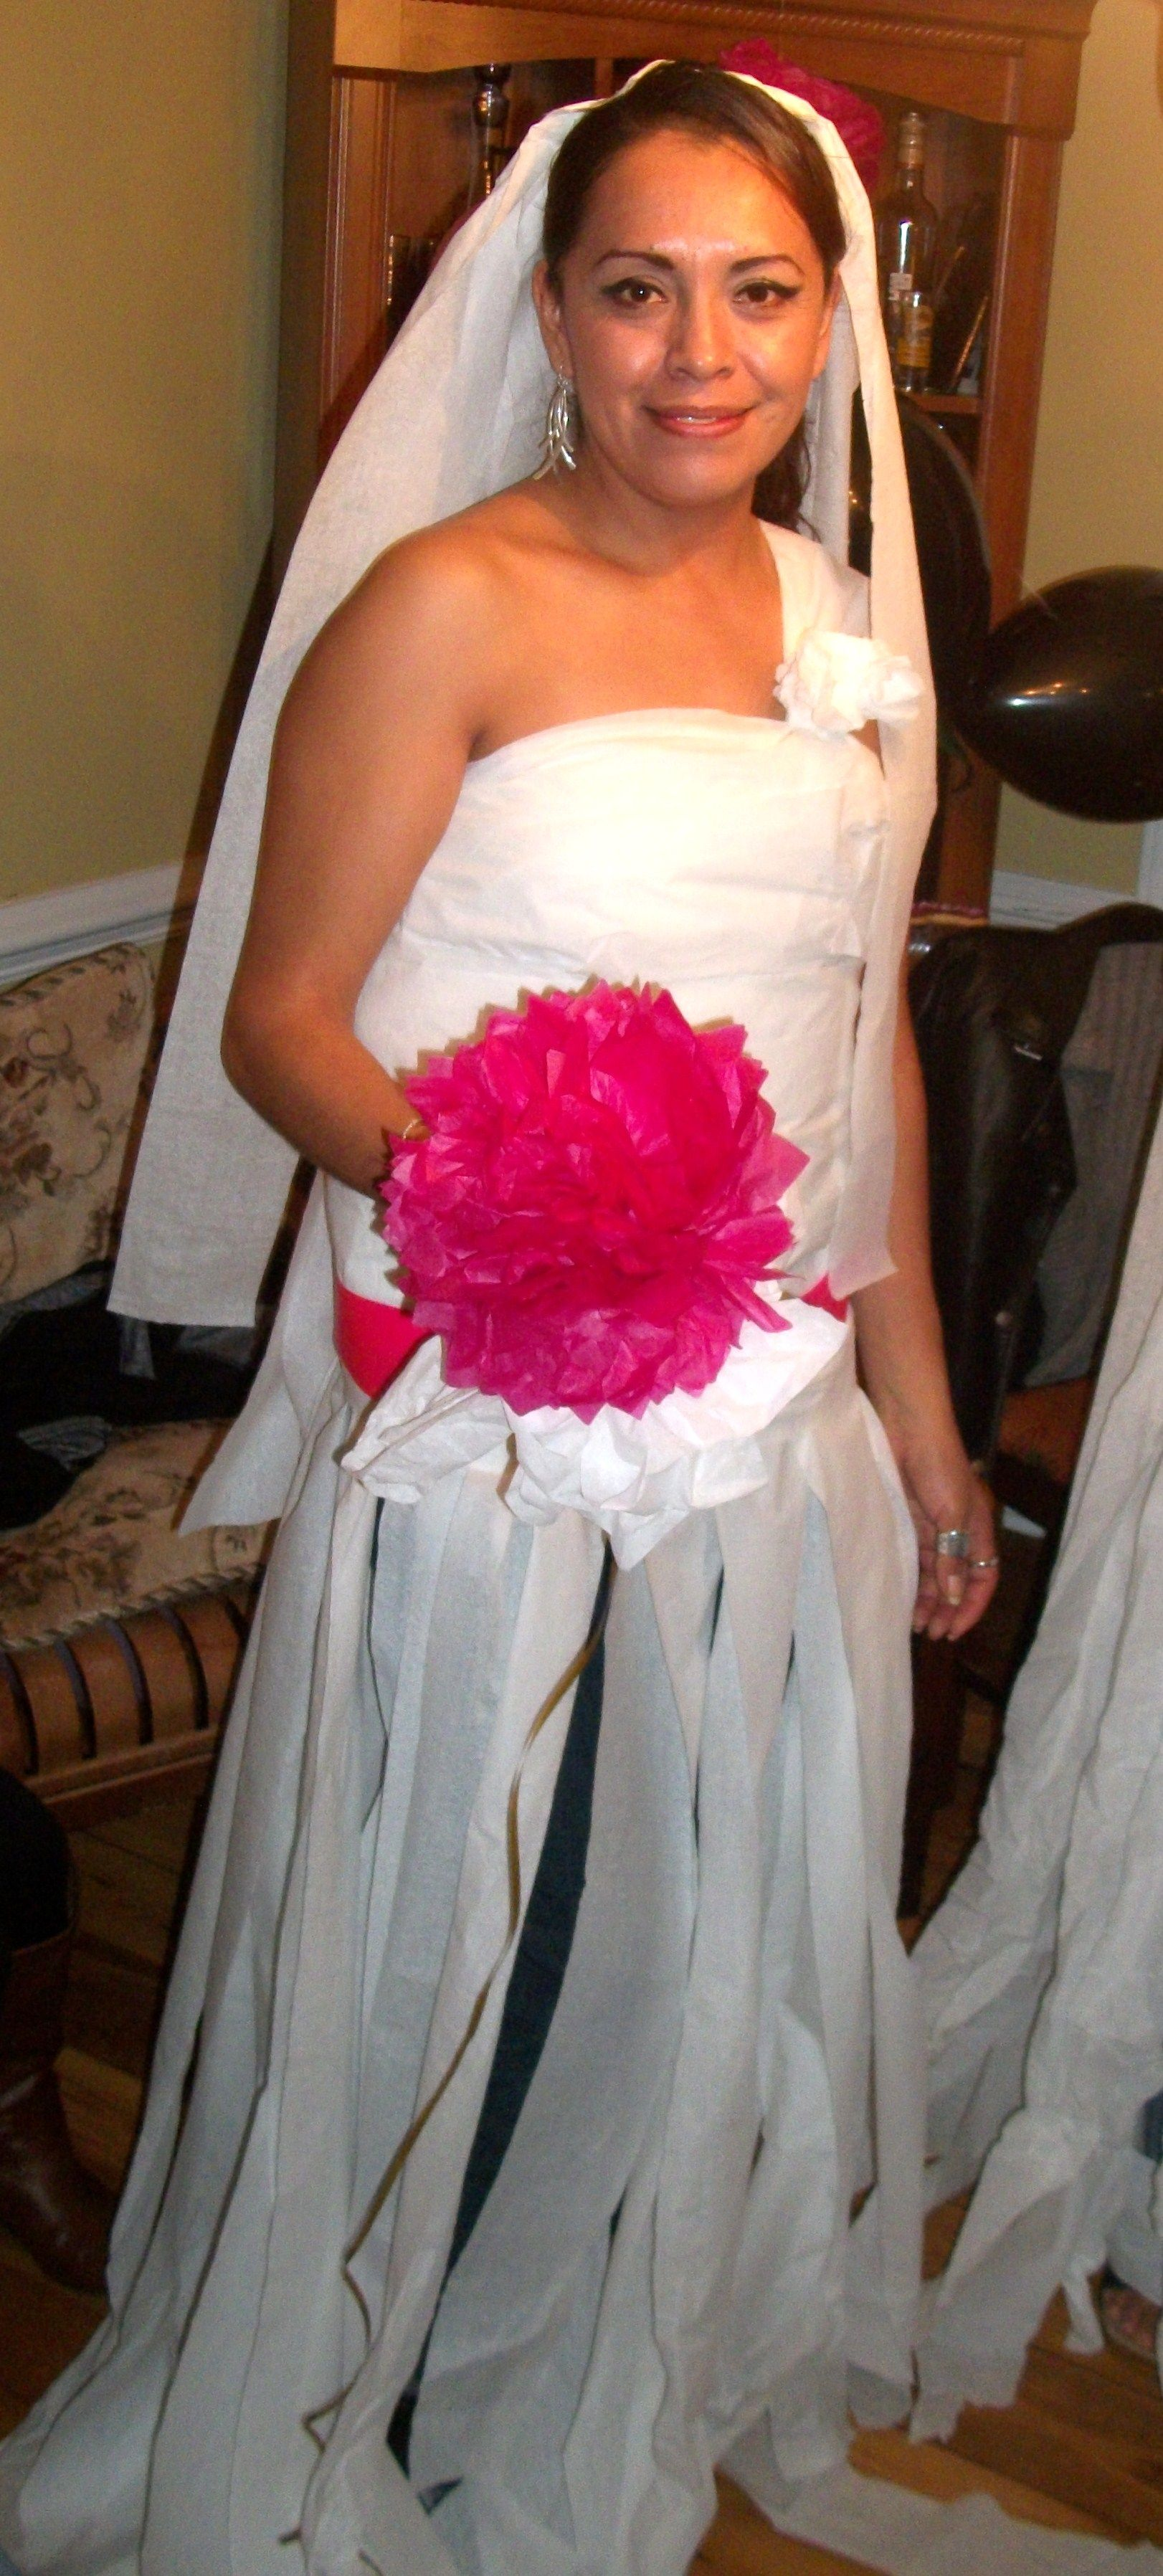 Toilet Paper Wedding Dress Game For A Bachelorette Party Bachelorette Party Toilet Paper Wedding Dress Bridal Shower Party